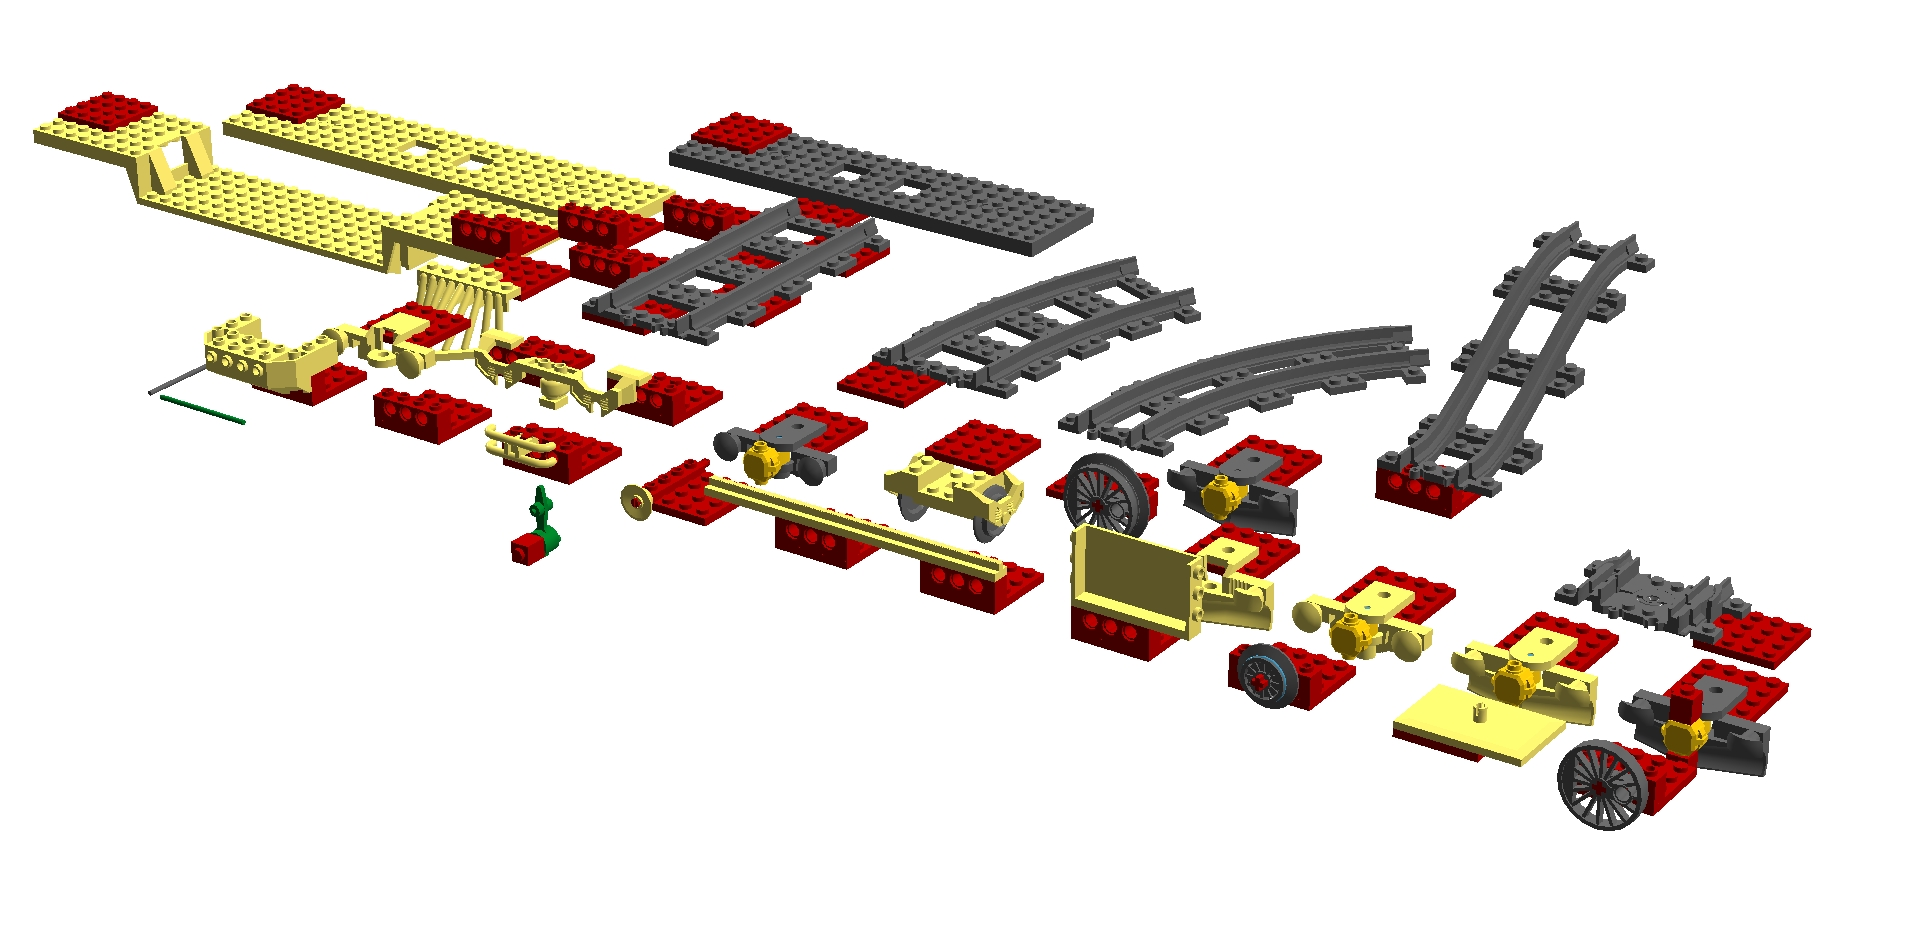 Parts Group 27 from Current LDraw.xml 4.40